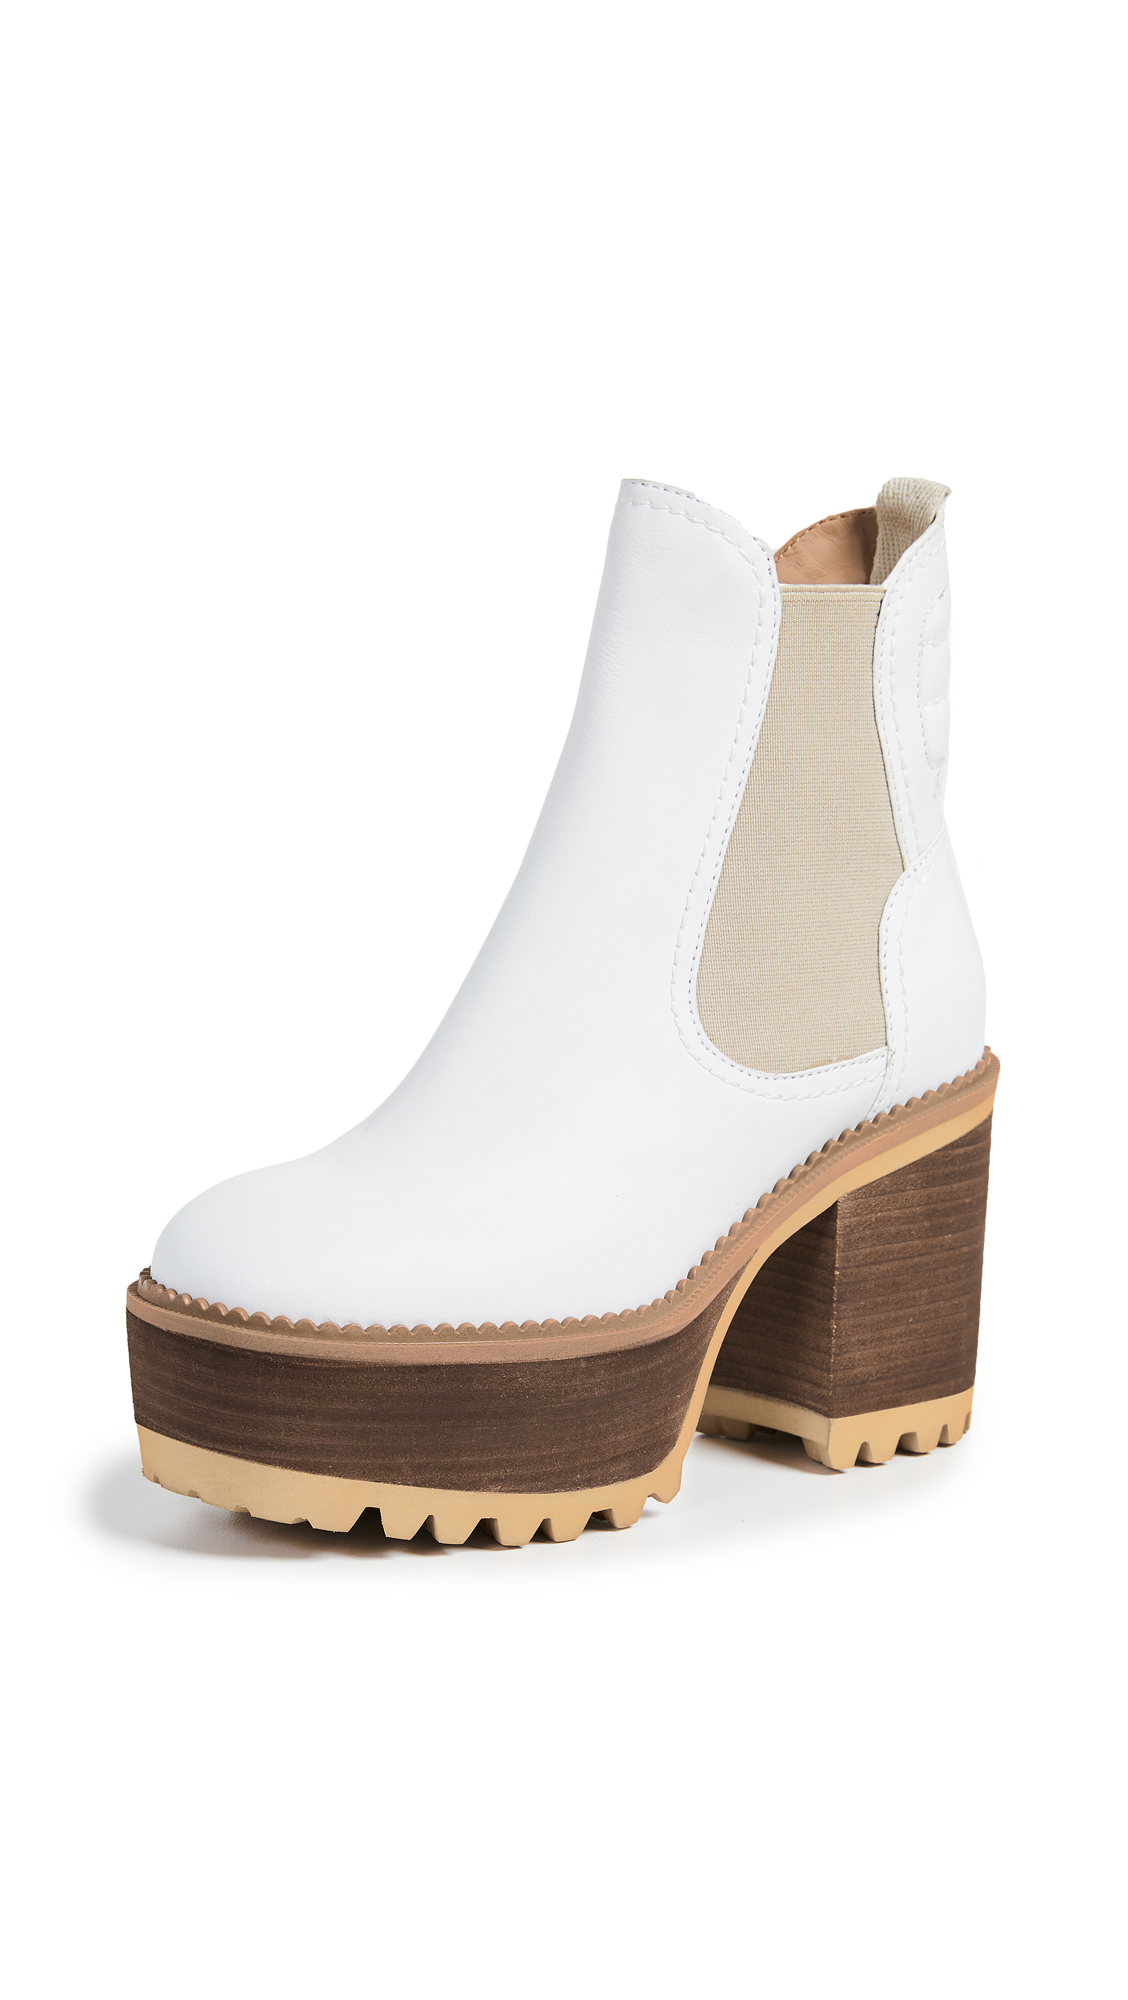 See by Chloe Erika Booties - Gesso